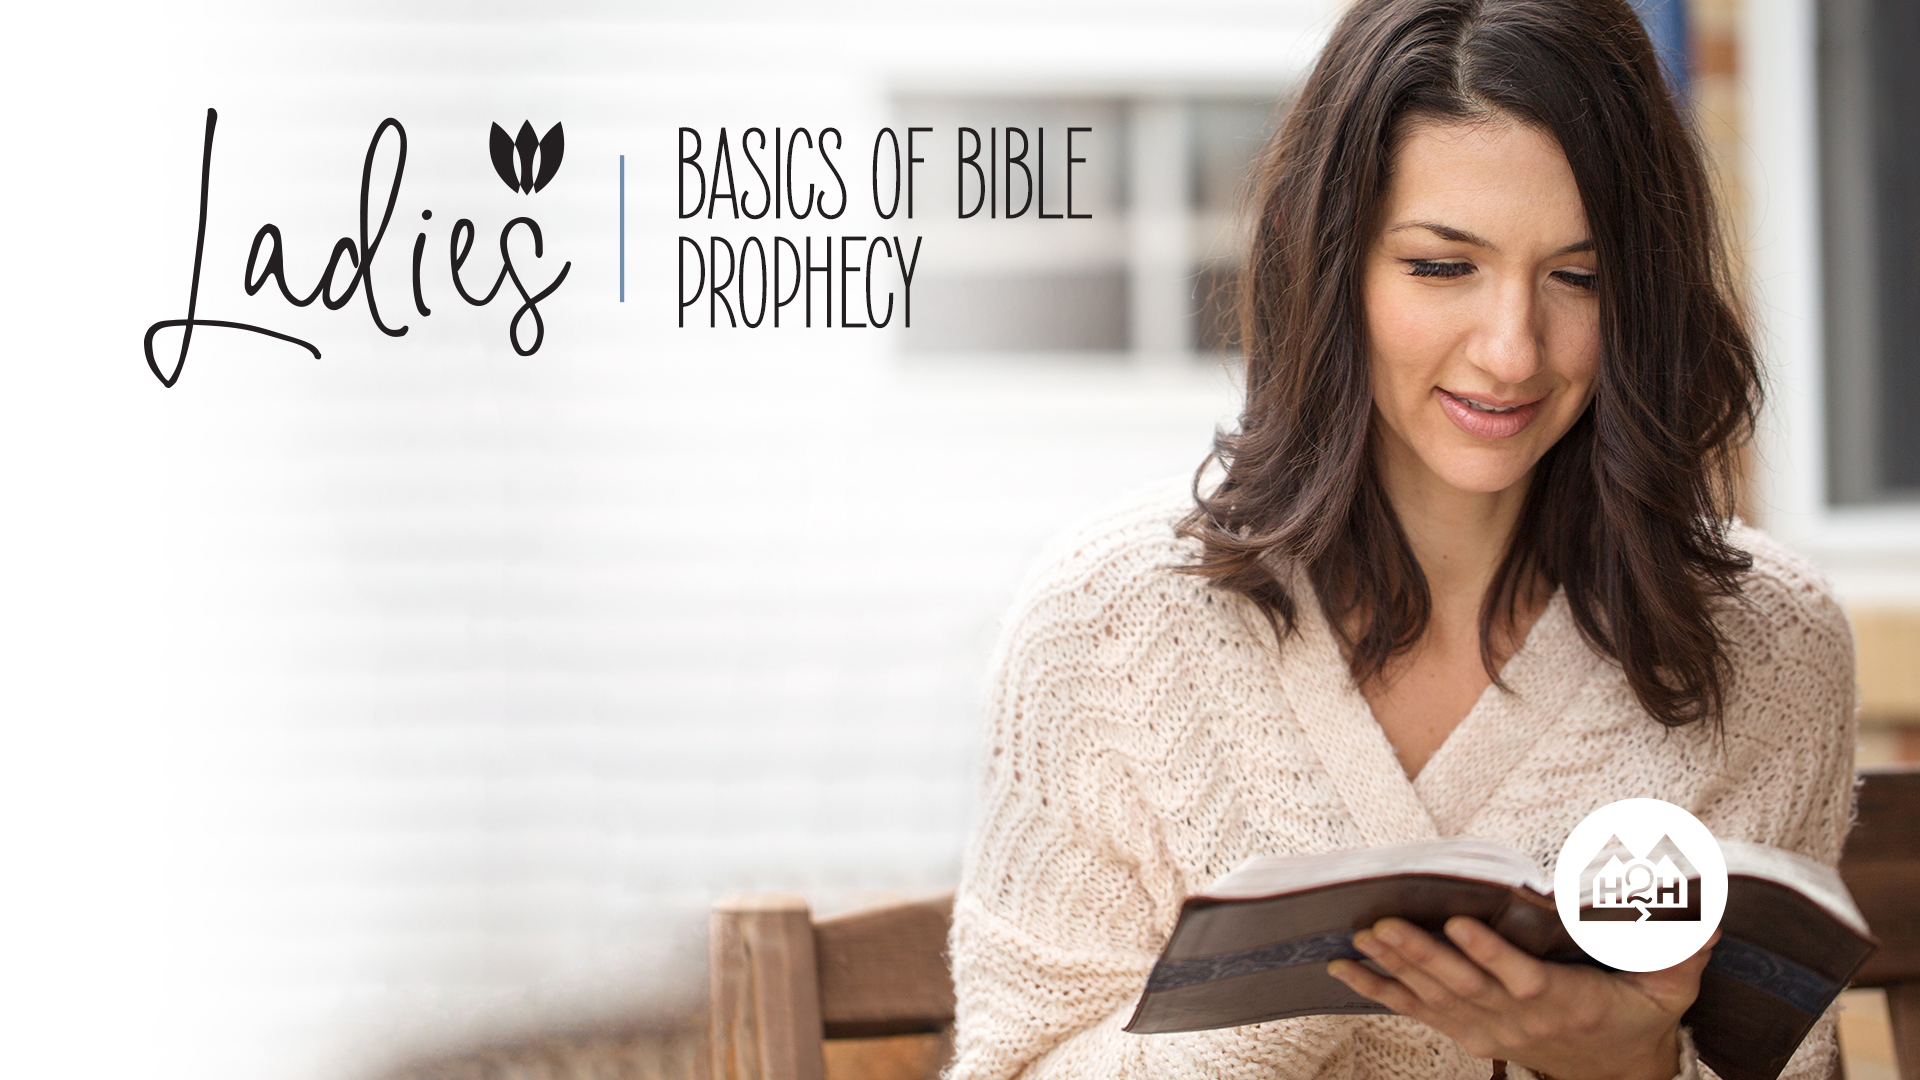 Ladies Basics of Bible Prophecy